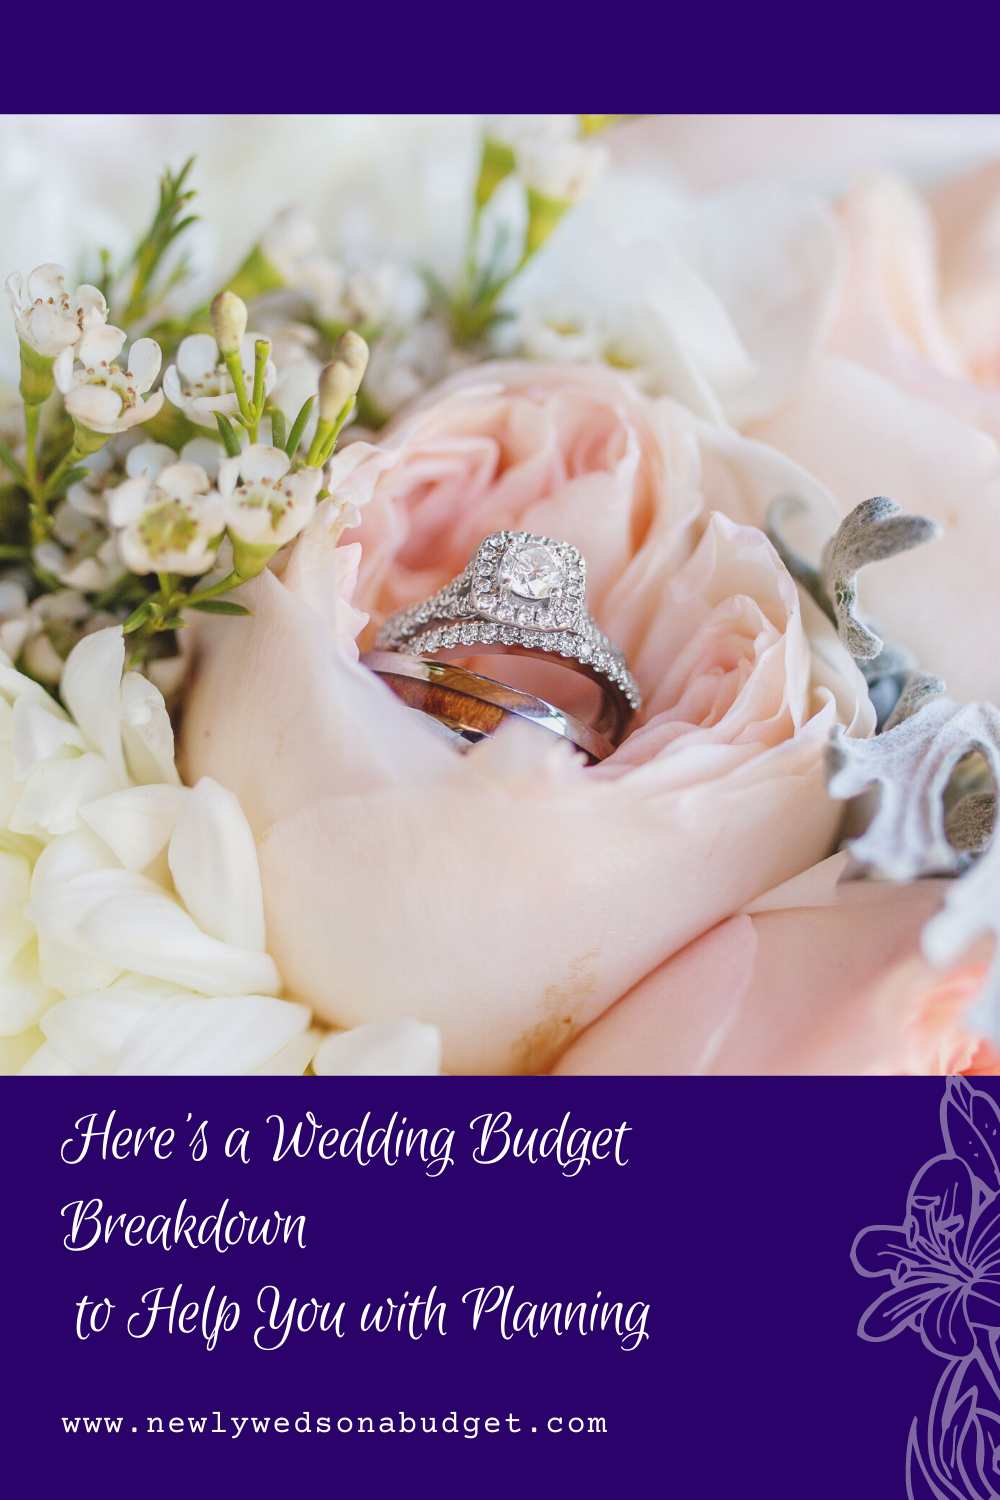 Here's a Wedding Budget Breakdown to Help You with Planning